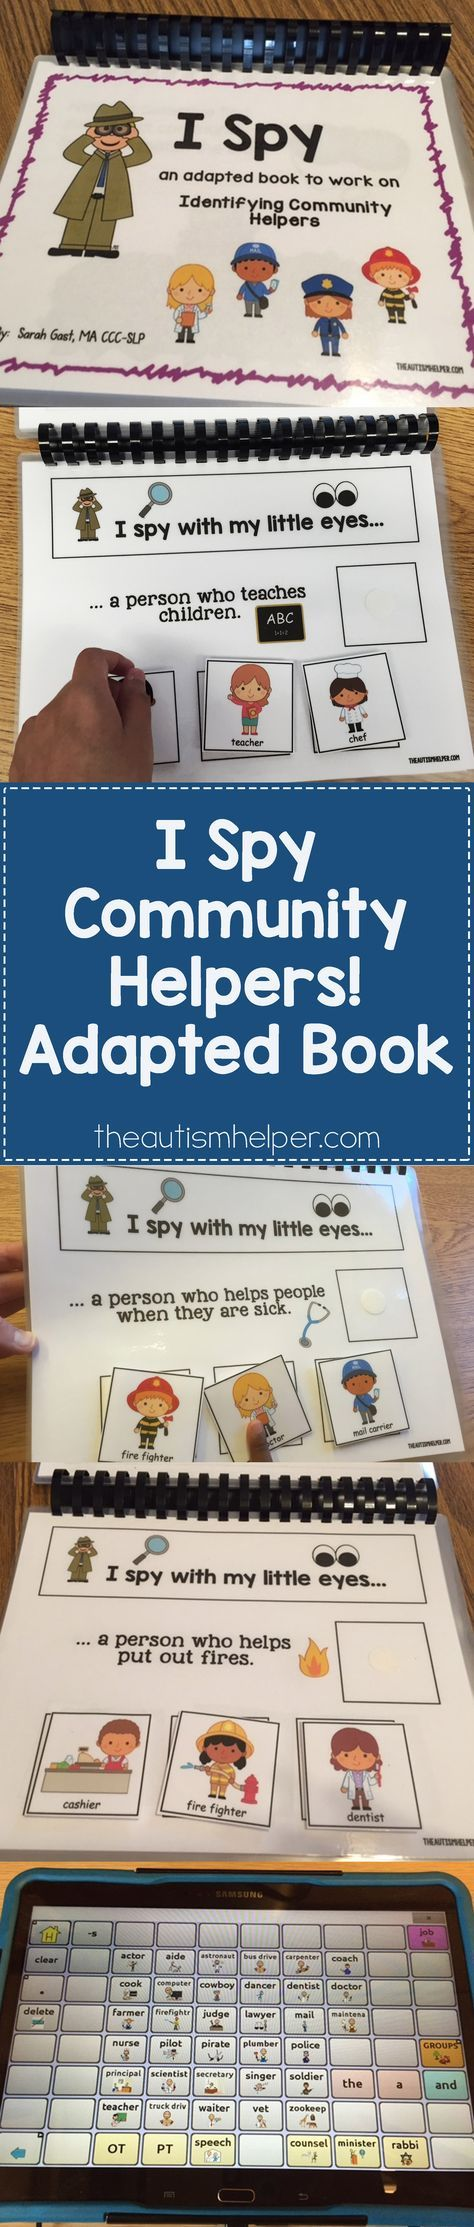 27 best community helpers images on Pinterest | Day care ...